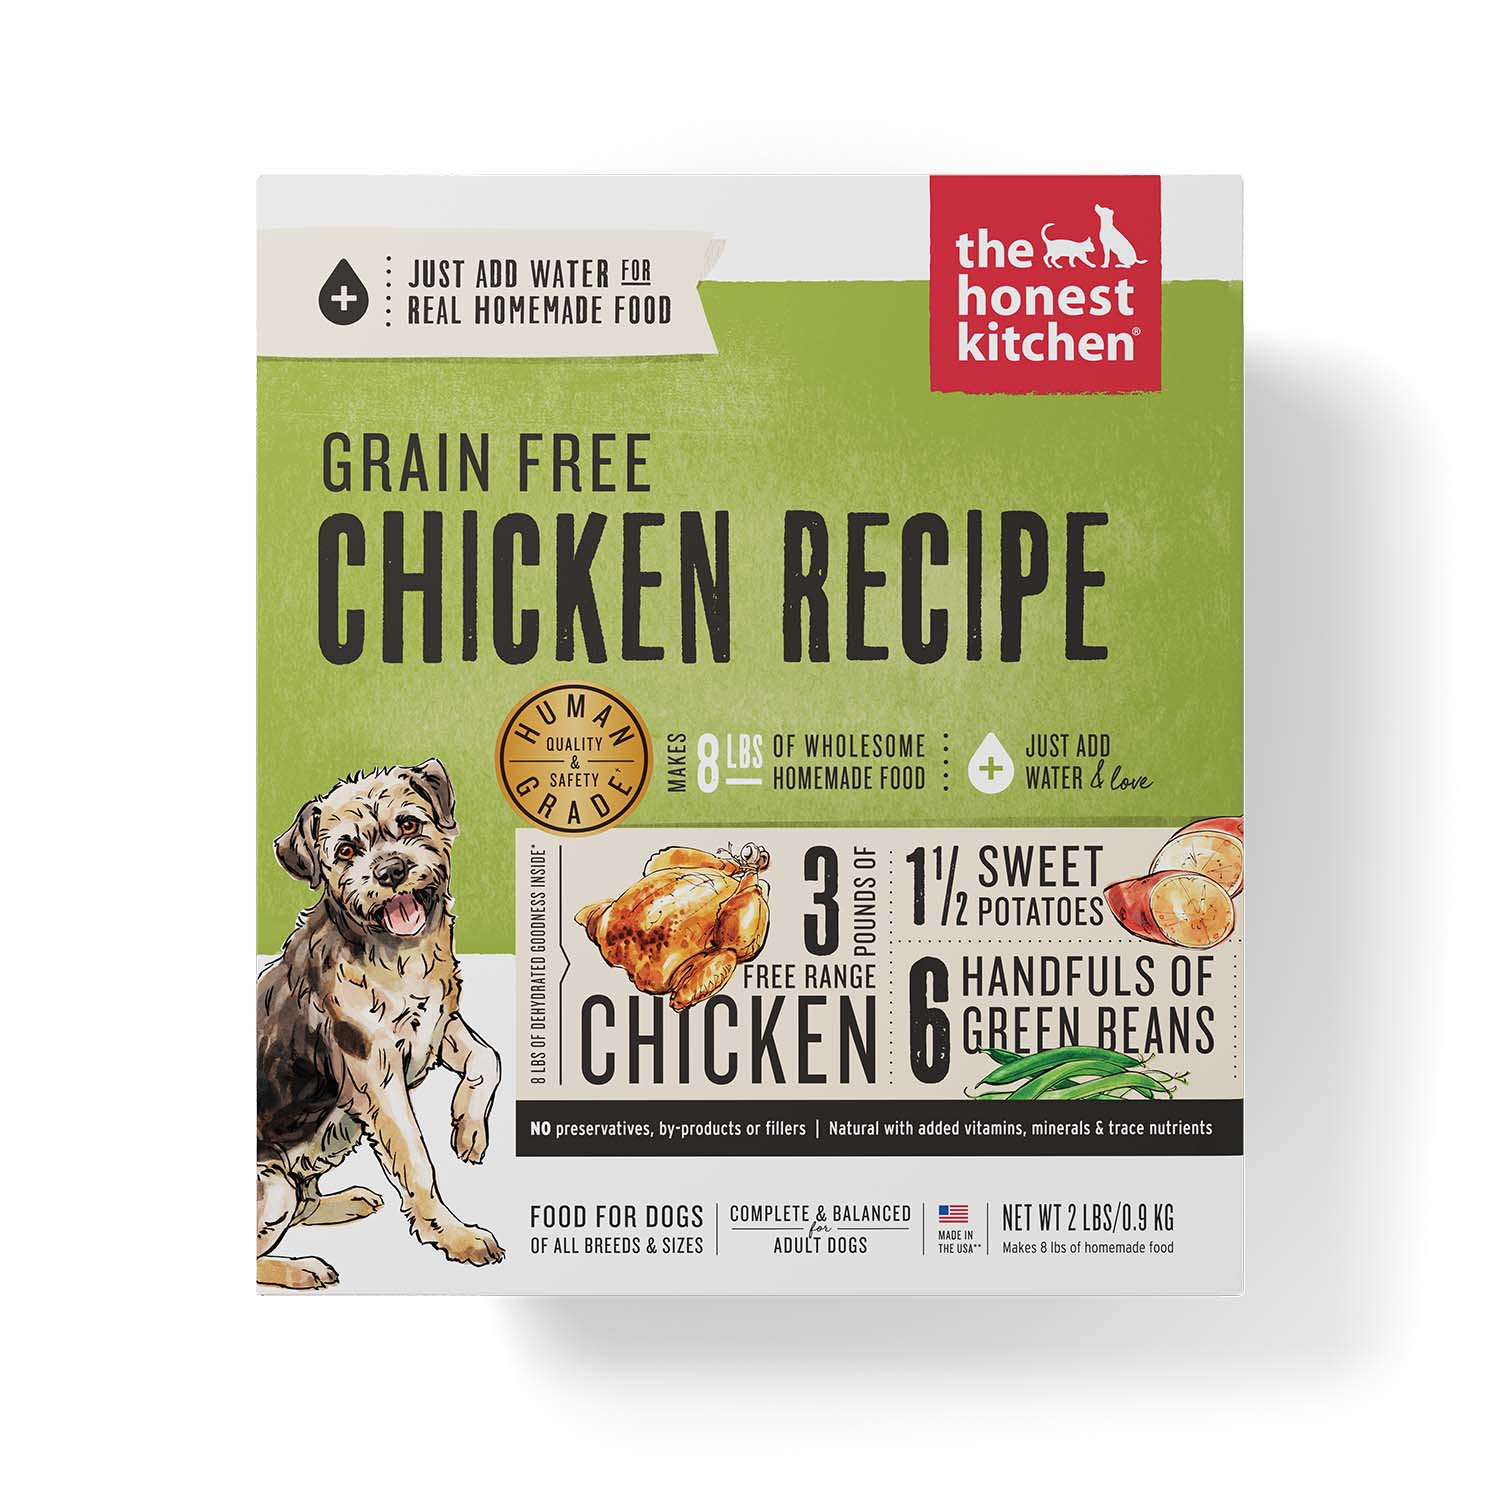 The Honest Kitchen Dehydrated - Grain Free Chicken Recipe (Force), 2 lbs